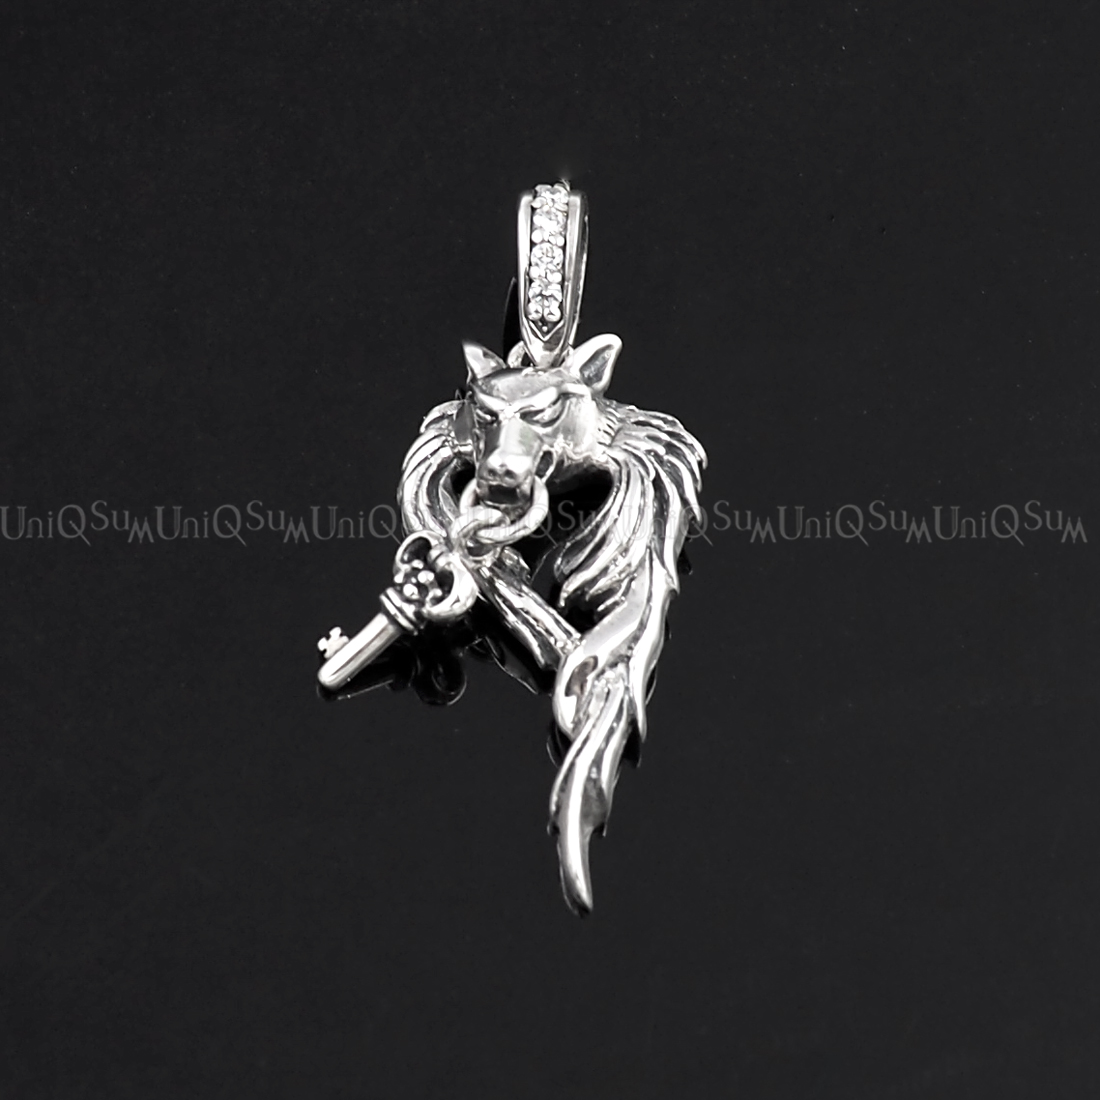 925 sterling silver wolf pendant with dangling key uniqsum wolf pendant key wolf 925 sterling silver pendants for mens necklaces key charm biker jewelry aloadofball Image collections